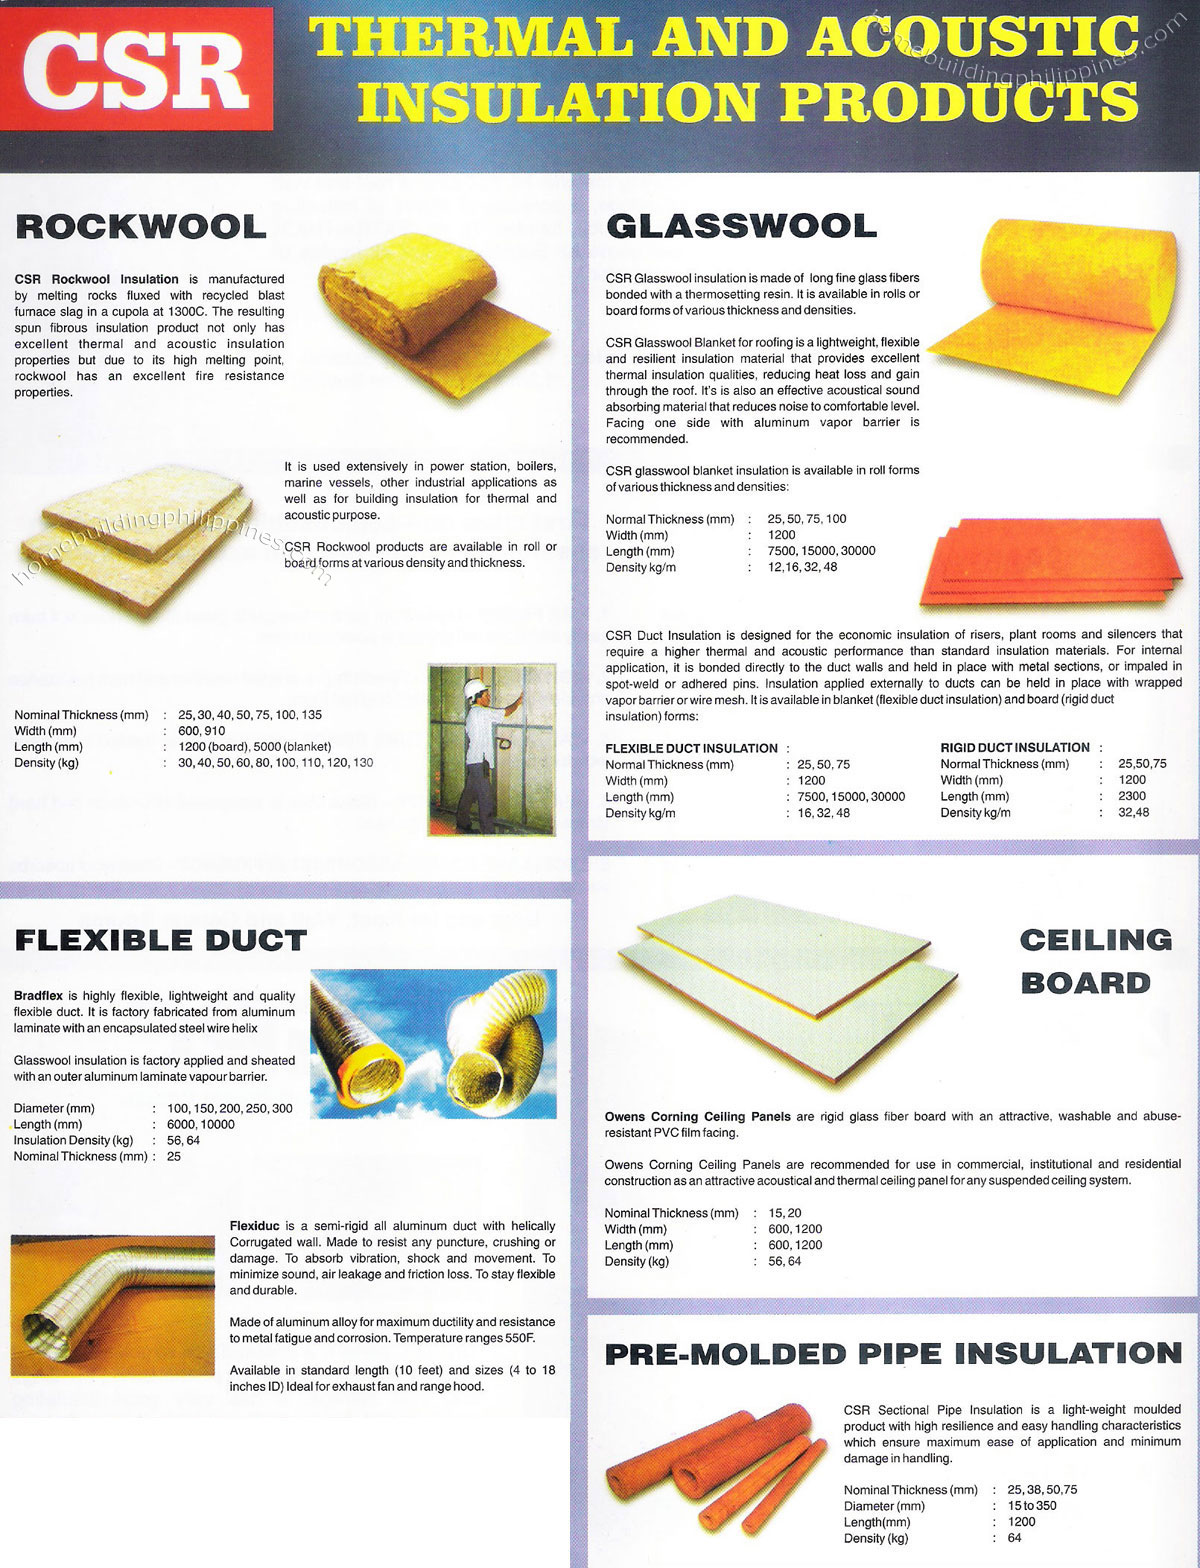 Thermal Acoustic Insulation : Csr thermal and acoustic insulation rockwool glasswool